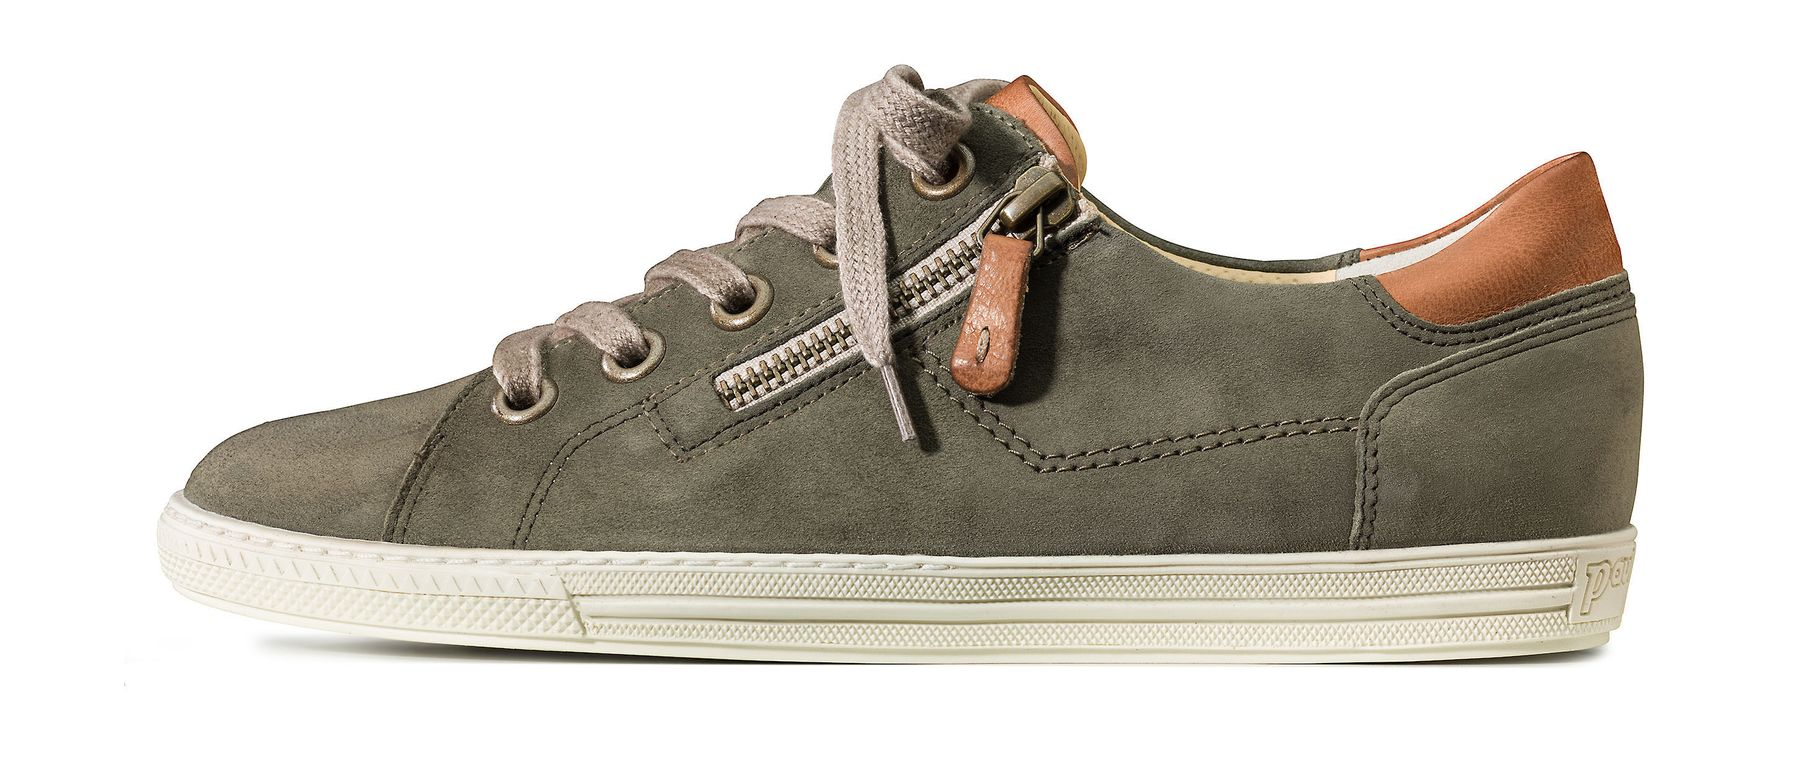 Sneakers in olive with side zipper